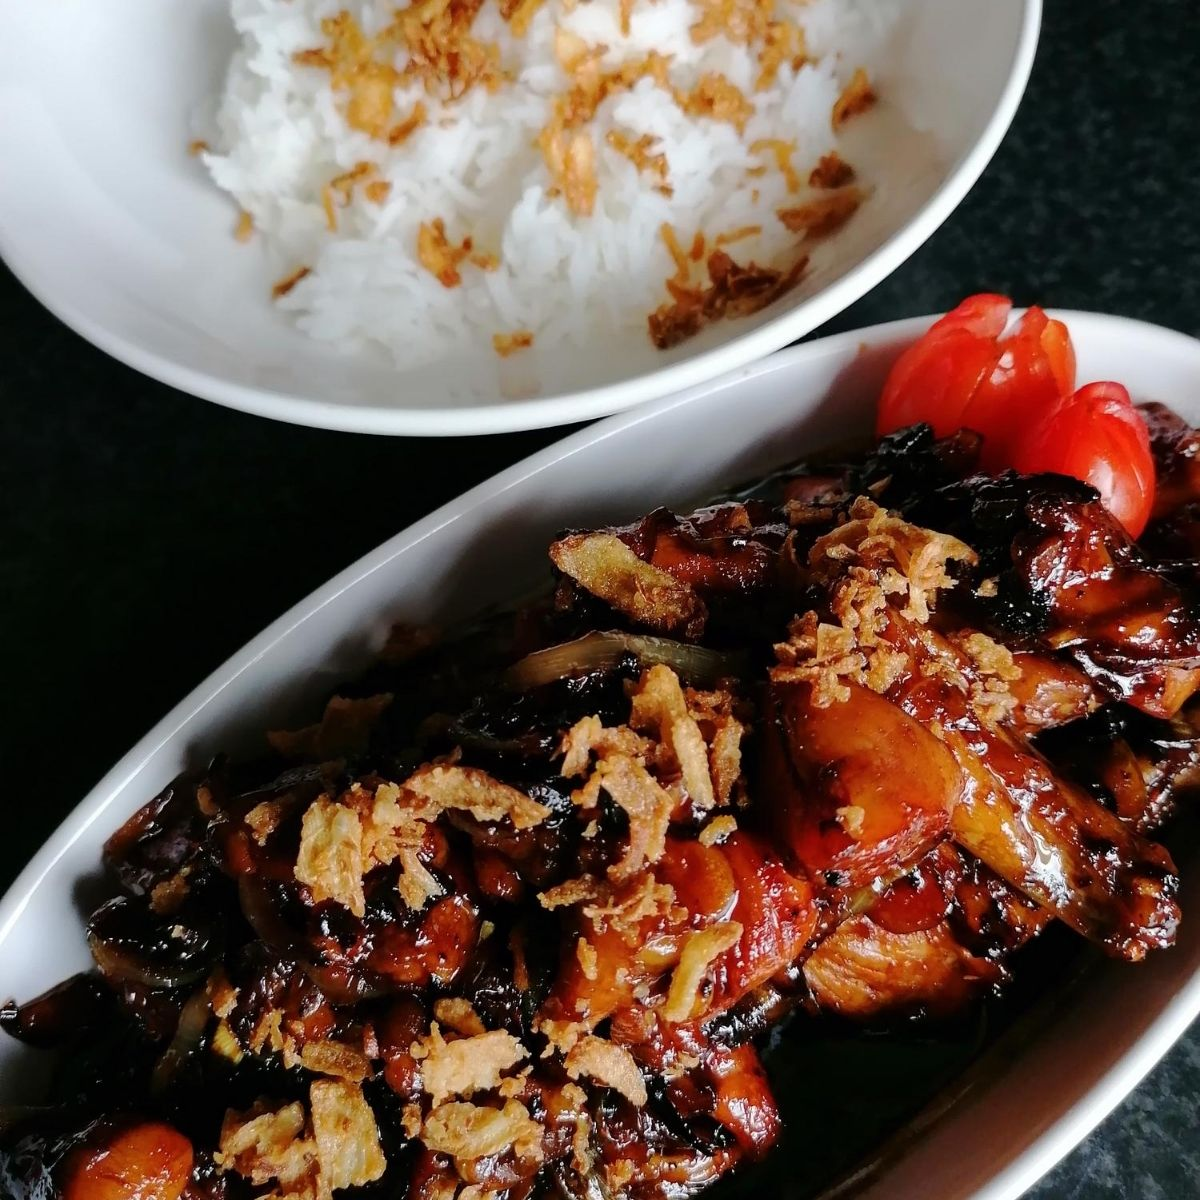 Ayam kecap - Indonesian sweet soy chicken